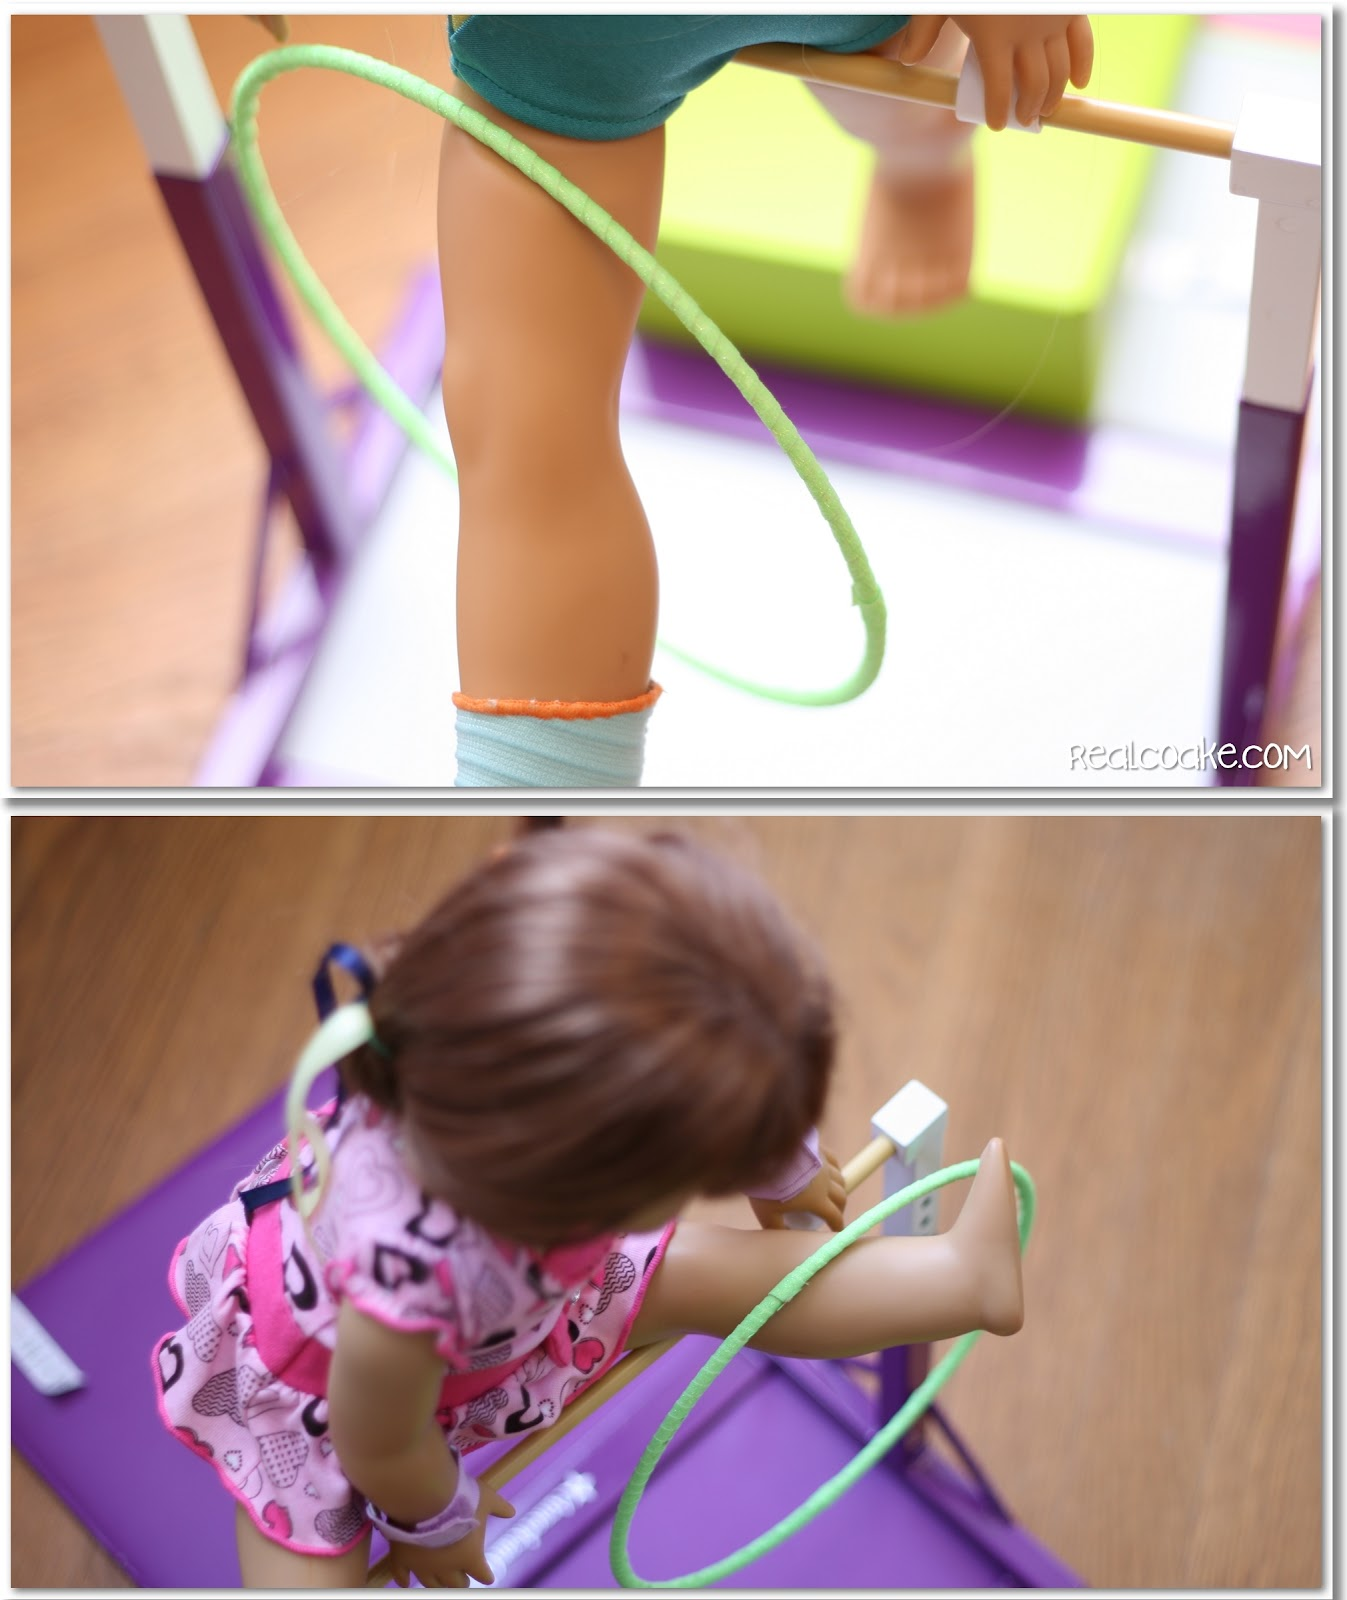 American girl craft to make your own doll gymnastic hoop for American girl crafts diy